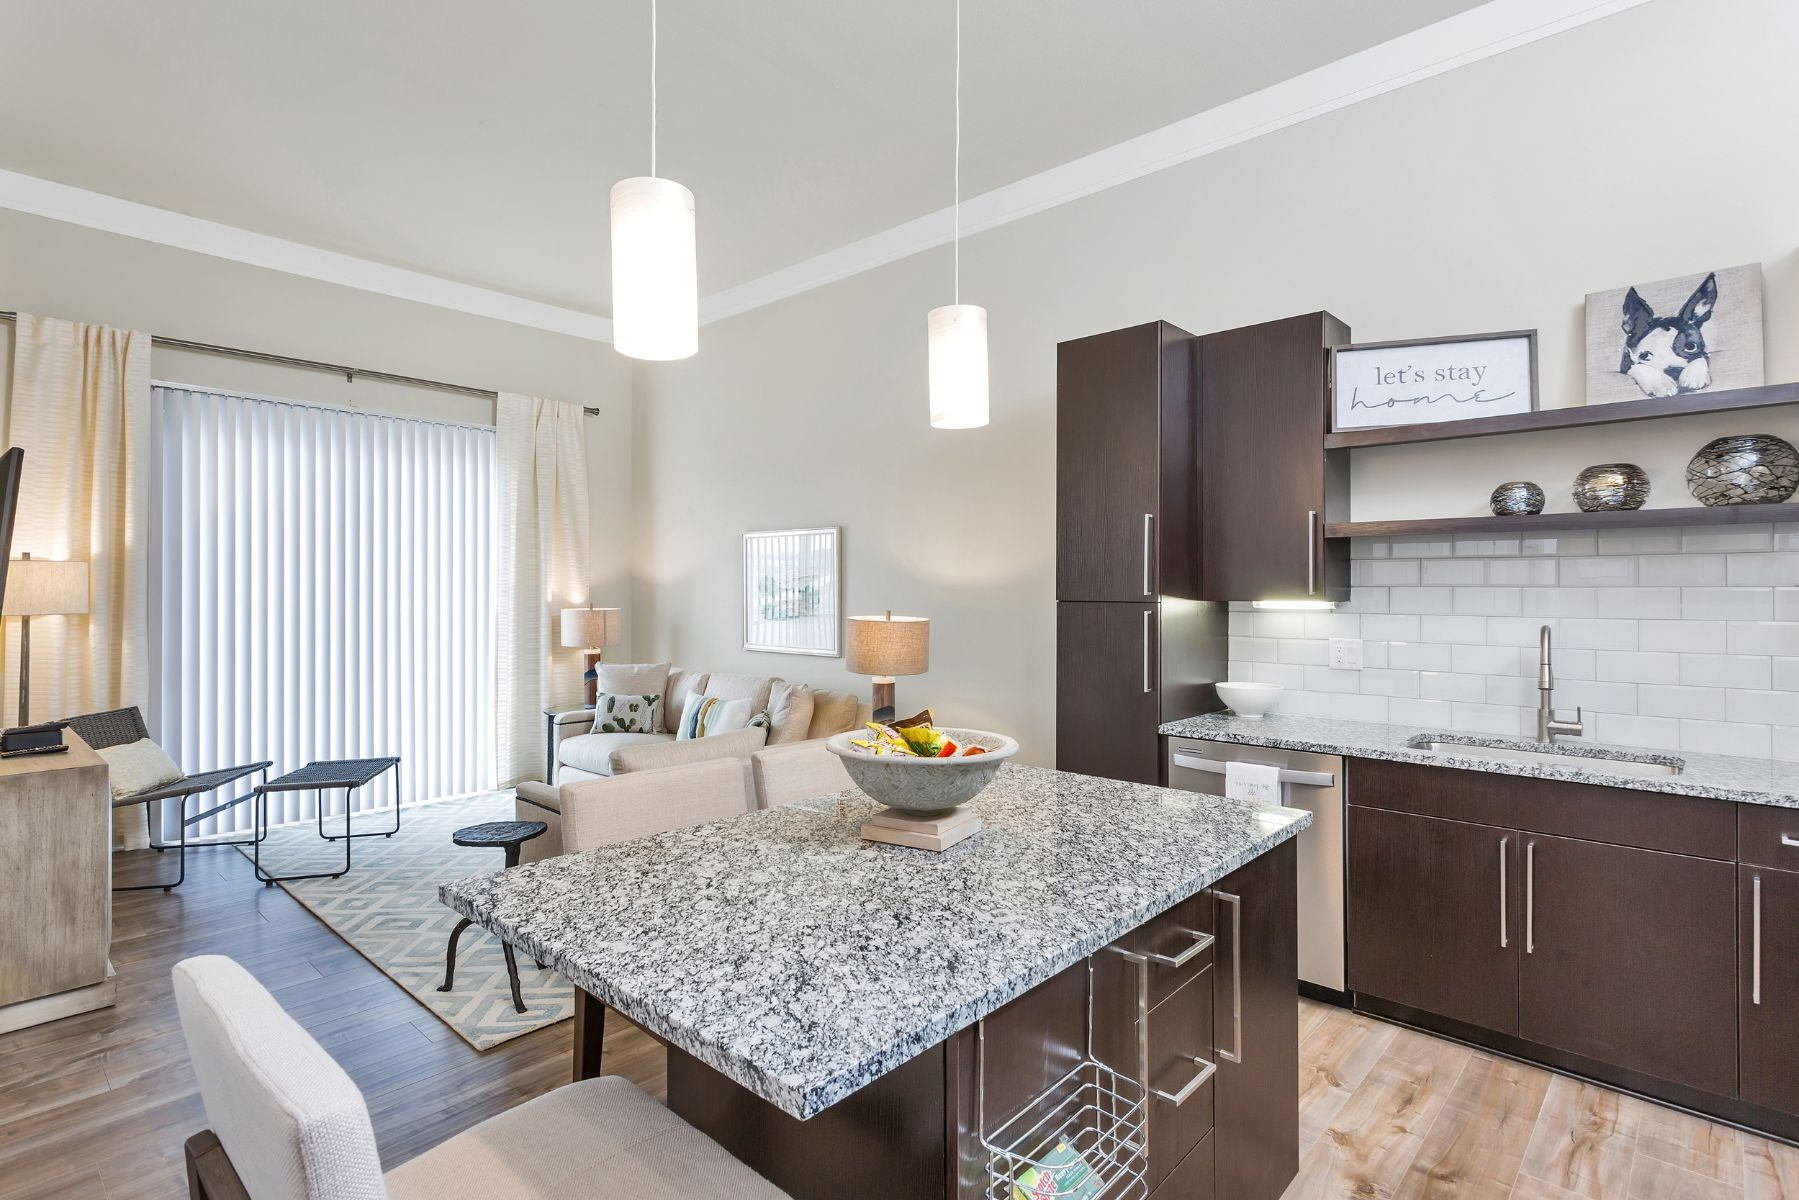 Westwood Green Apartments open floorplan Living Room and Kitchen with large island, stainless appliances, and quartz countertops